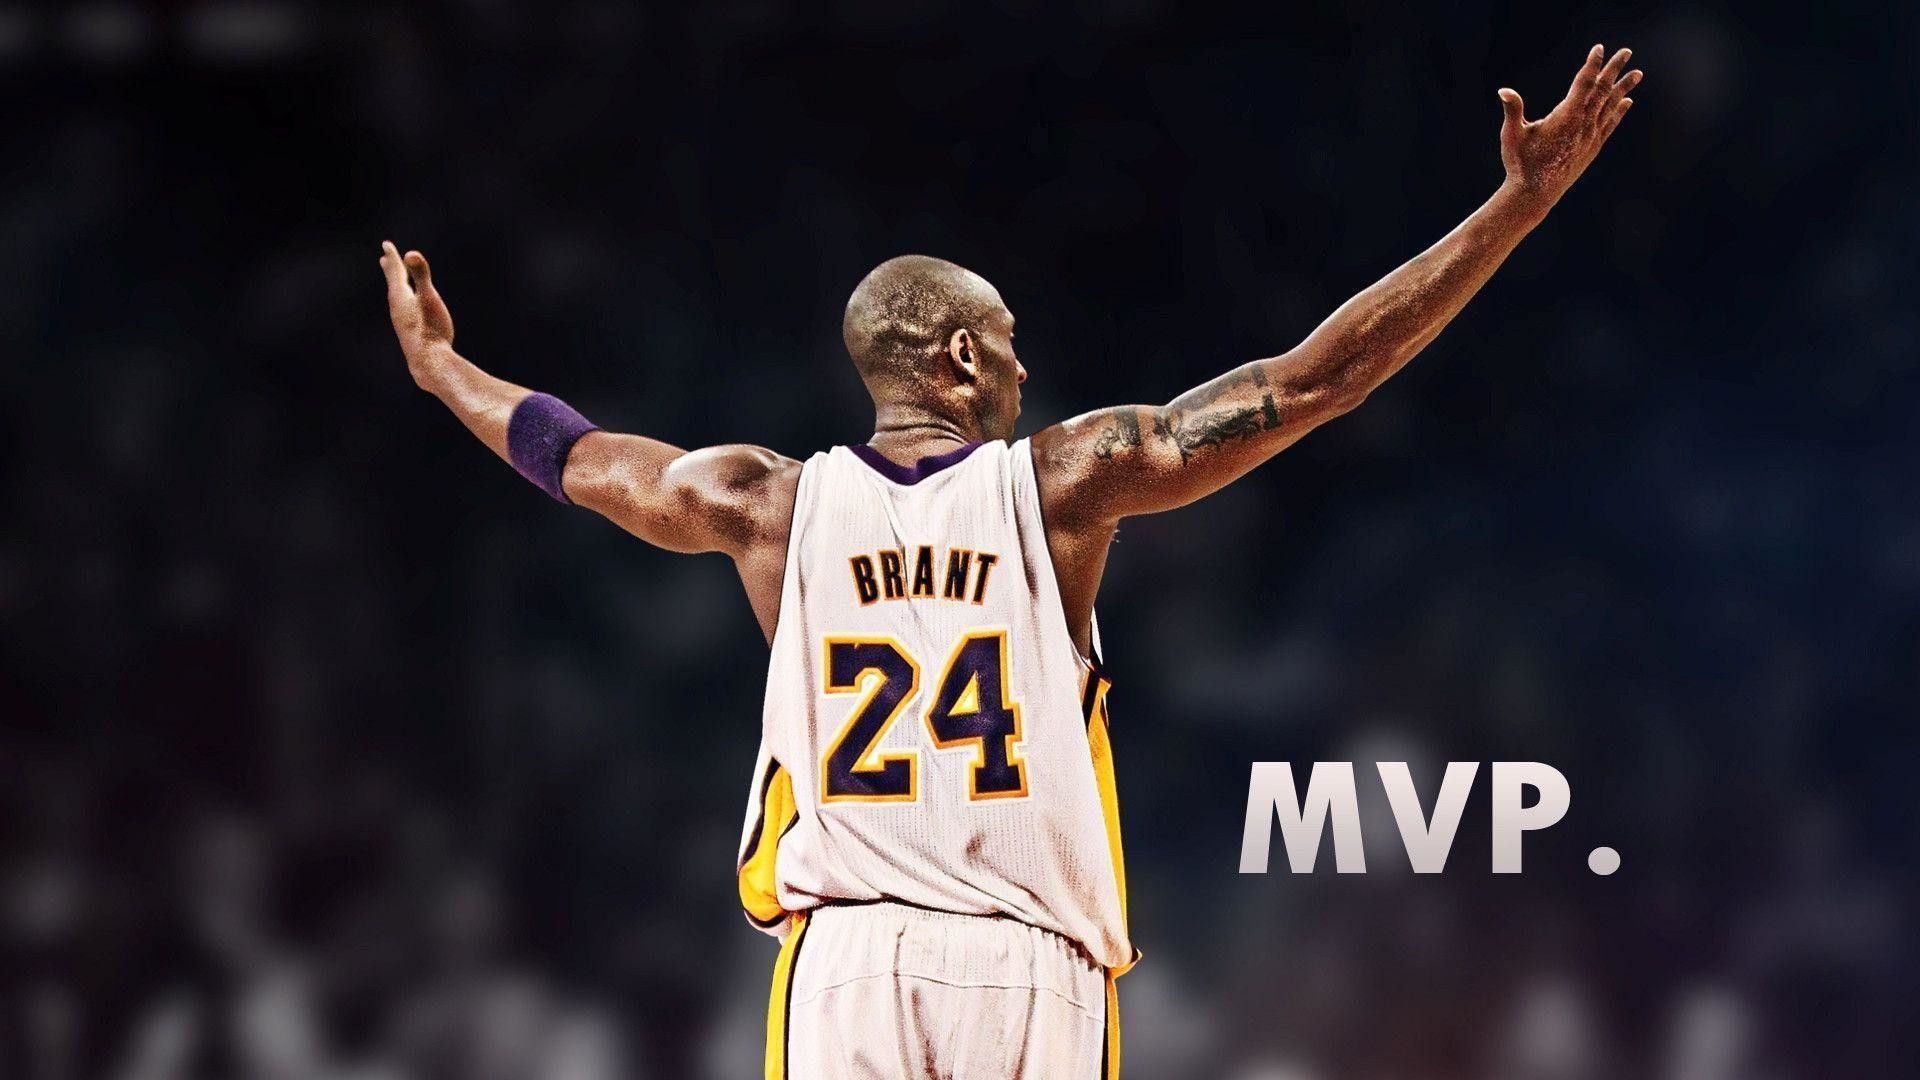 1920x1080 Kobe Bryant Dunk On Lebron James Wallpaper Widescreen Is Cool Wallpapers